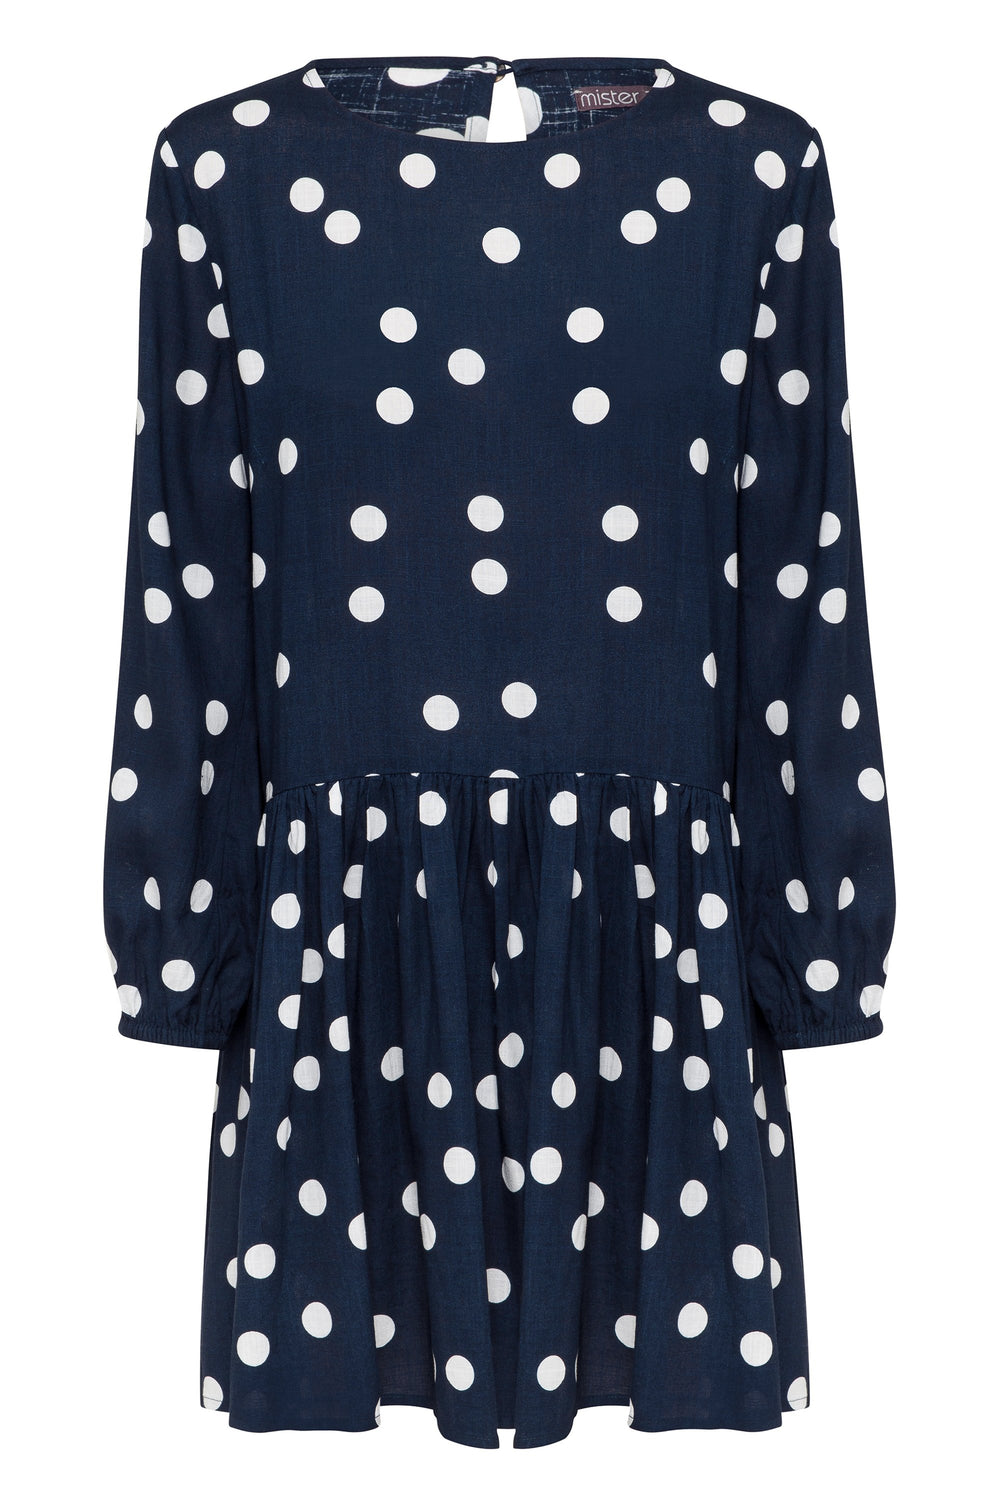 Elsa Linen Dress In Navy Spot